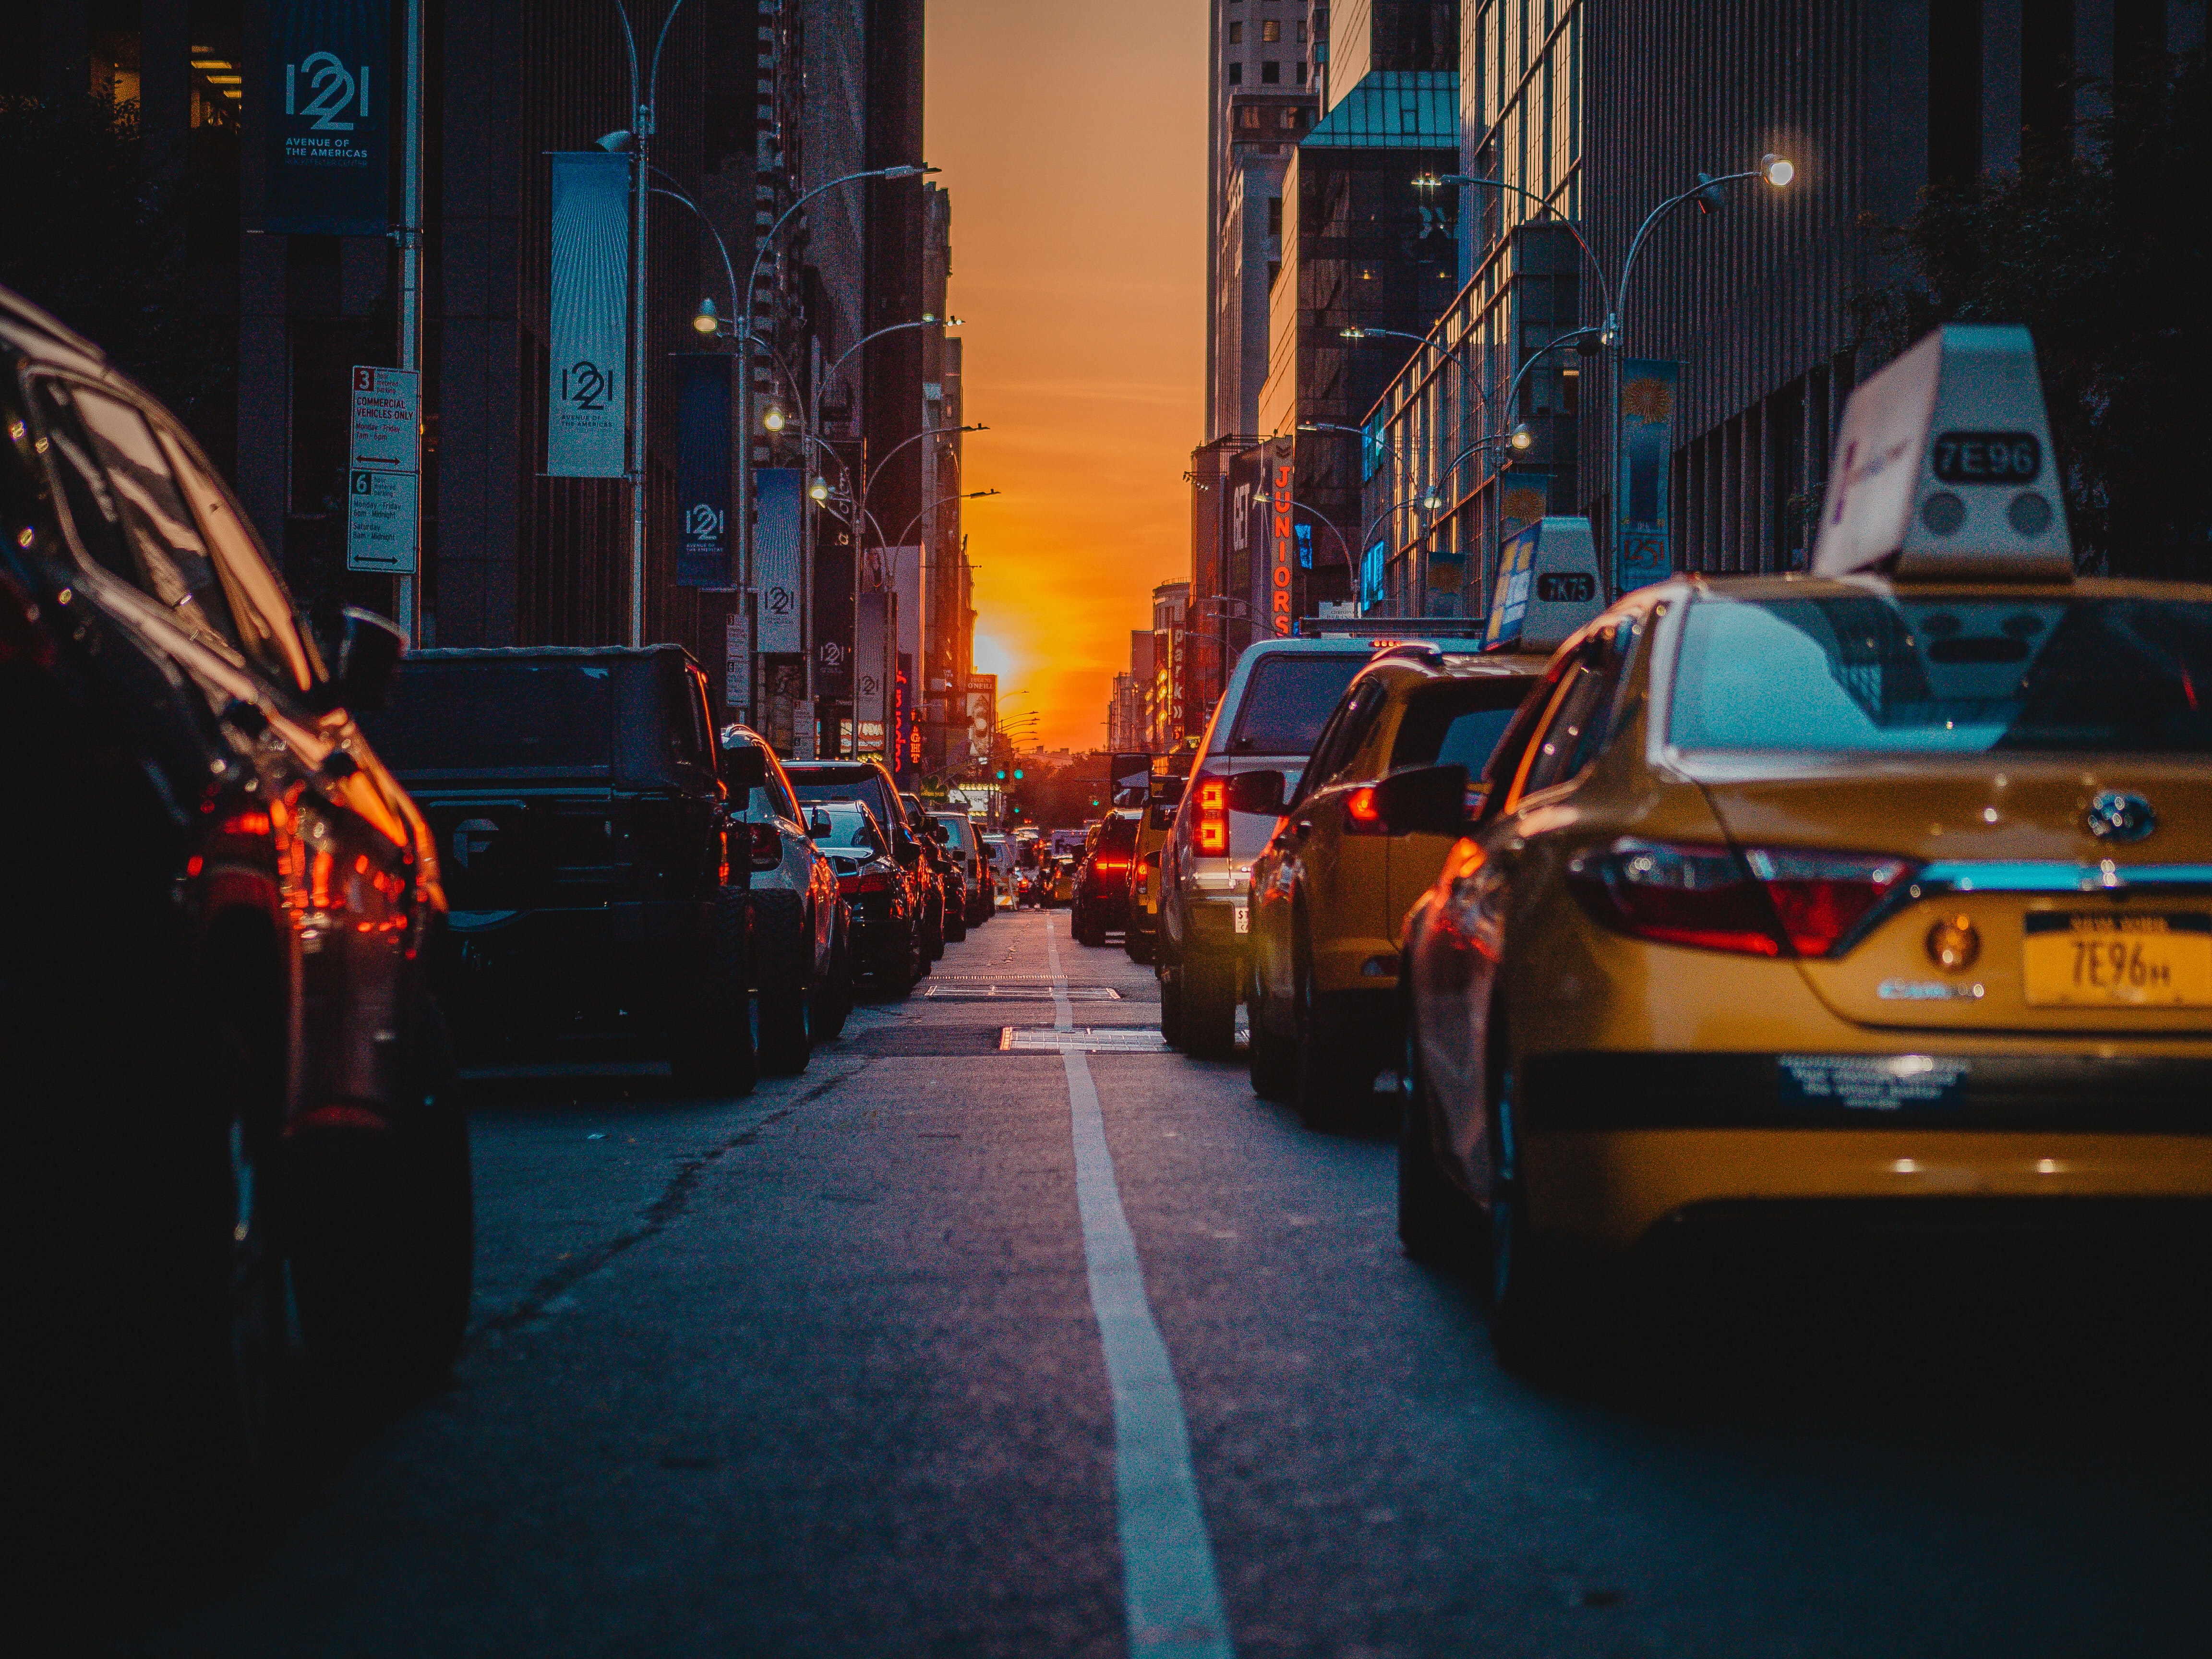 low light photography of street cars